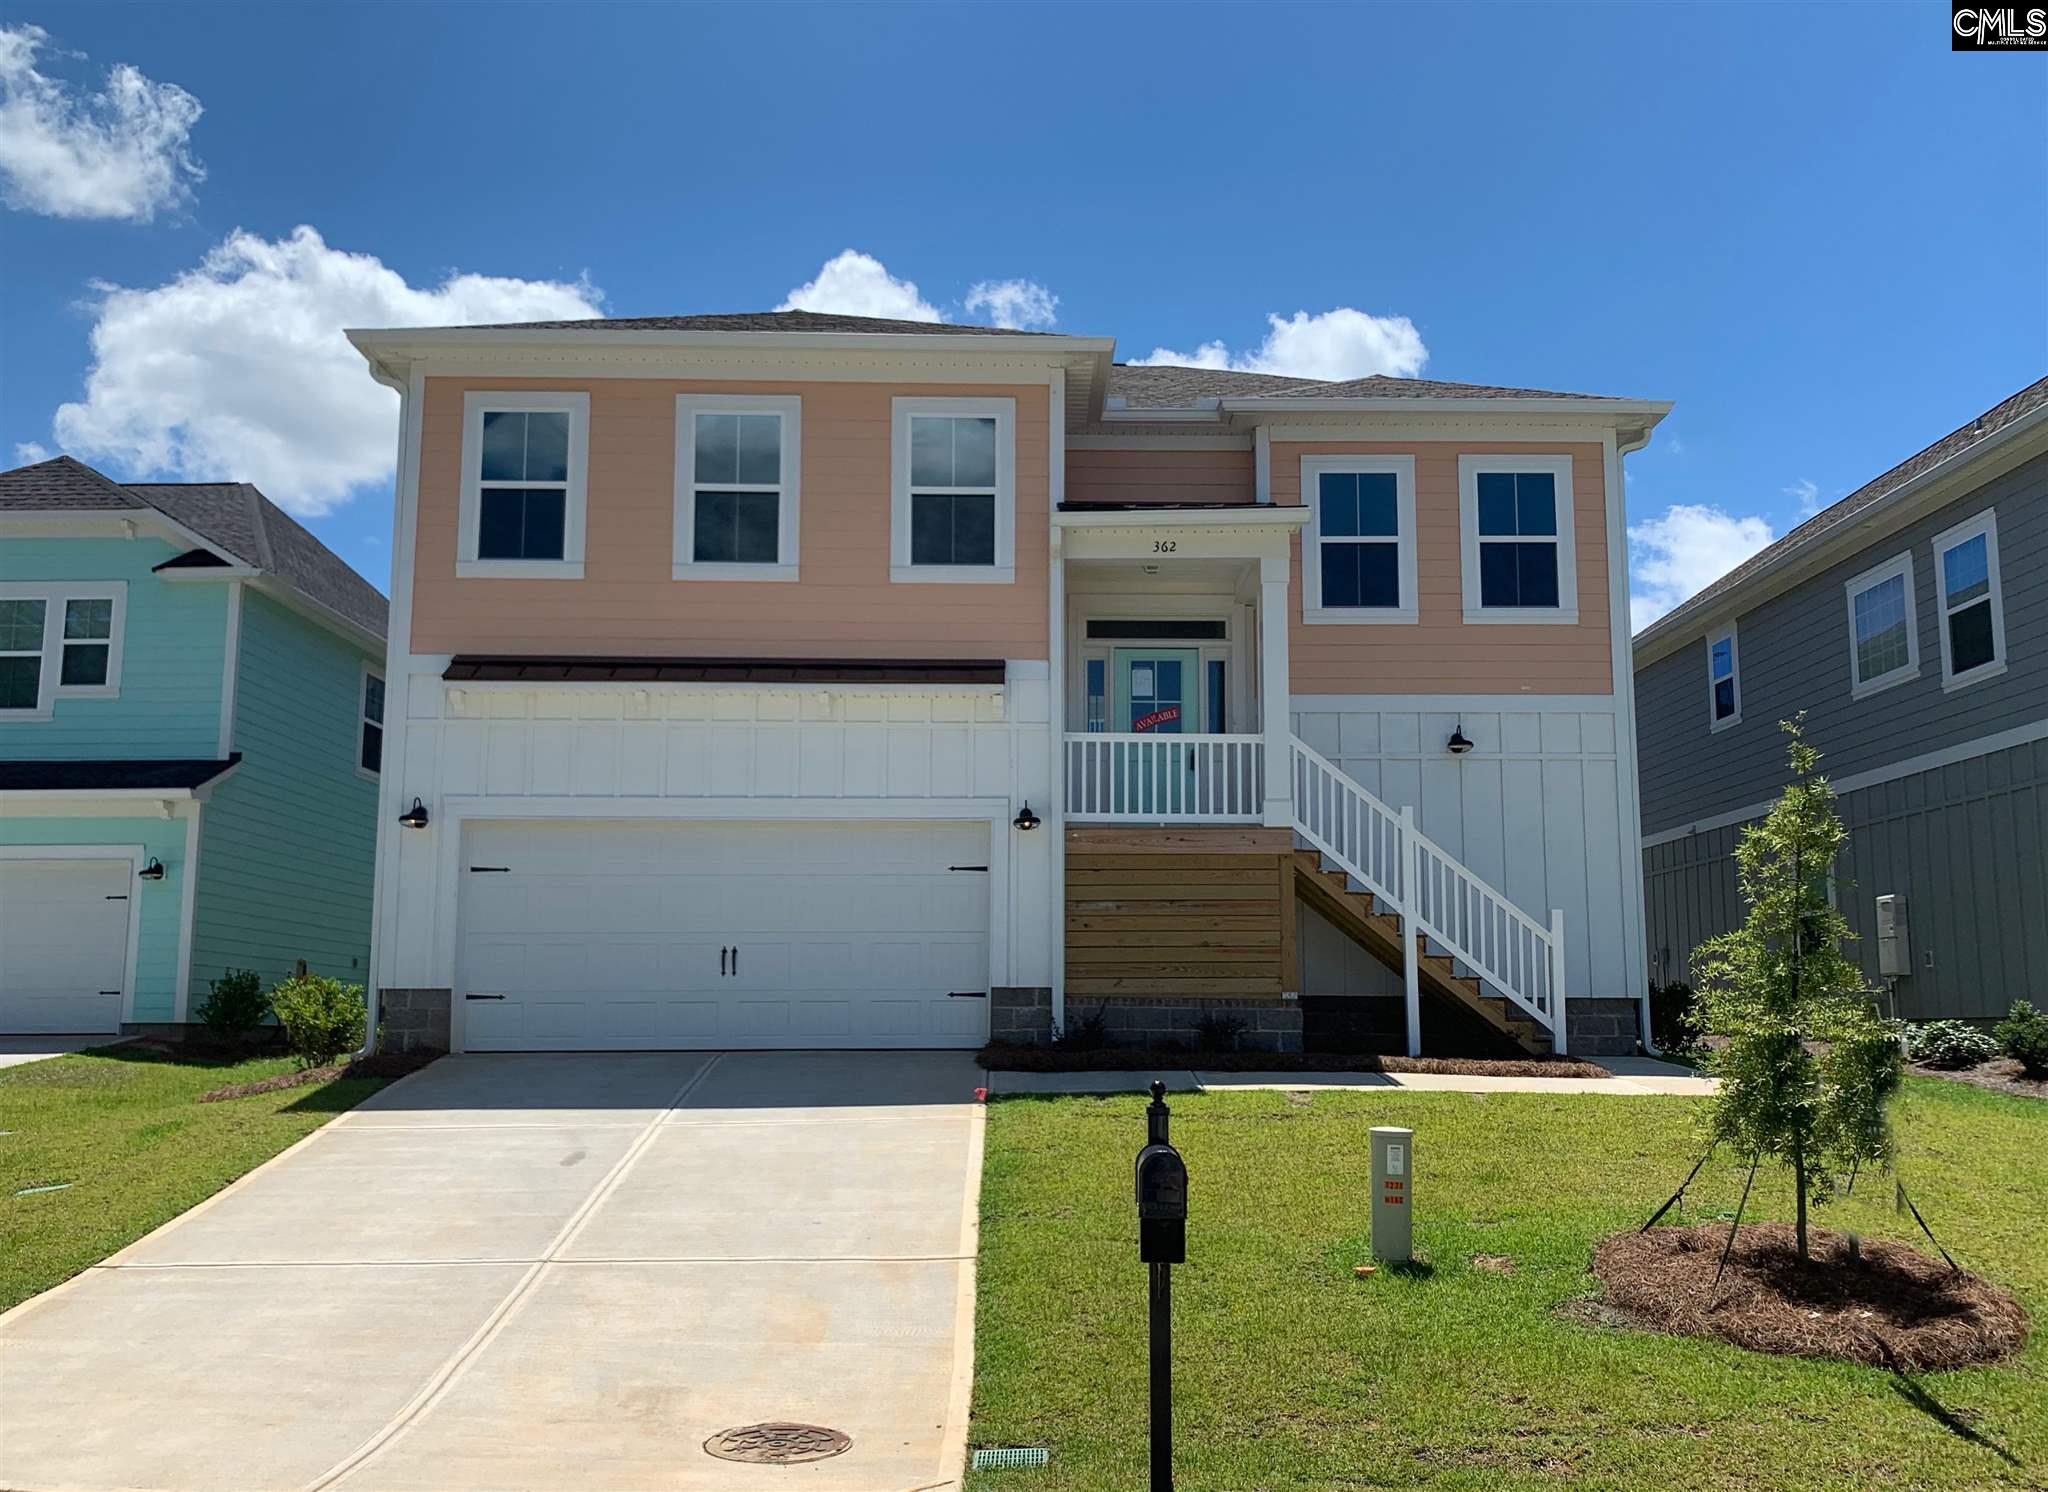 362 Cabana Lexington, SC 29072